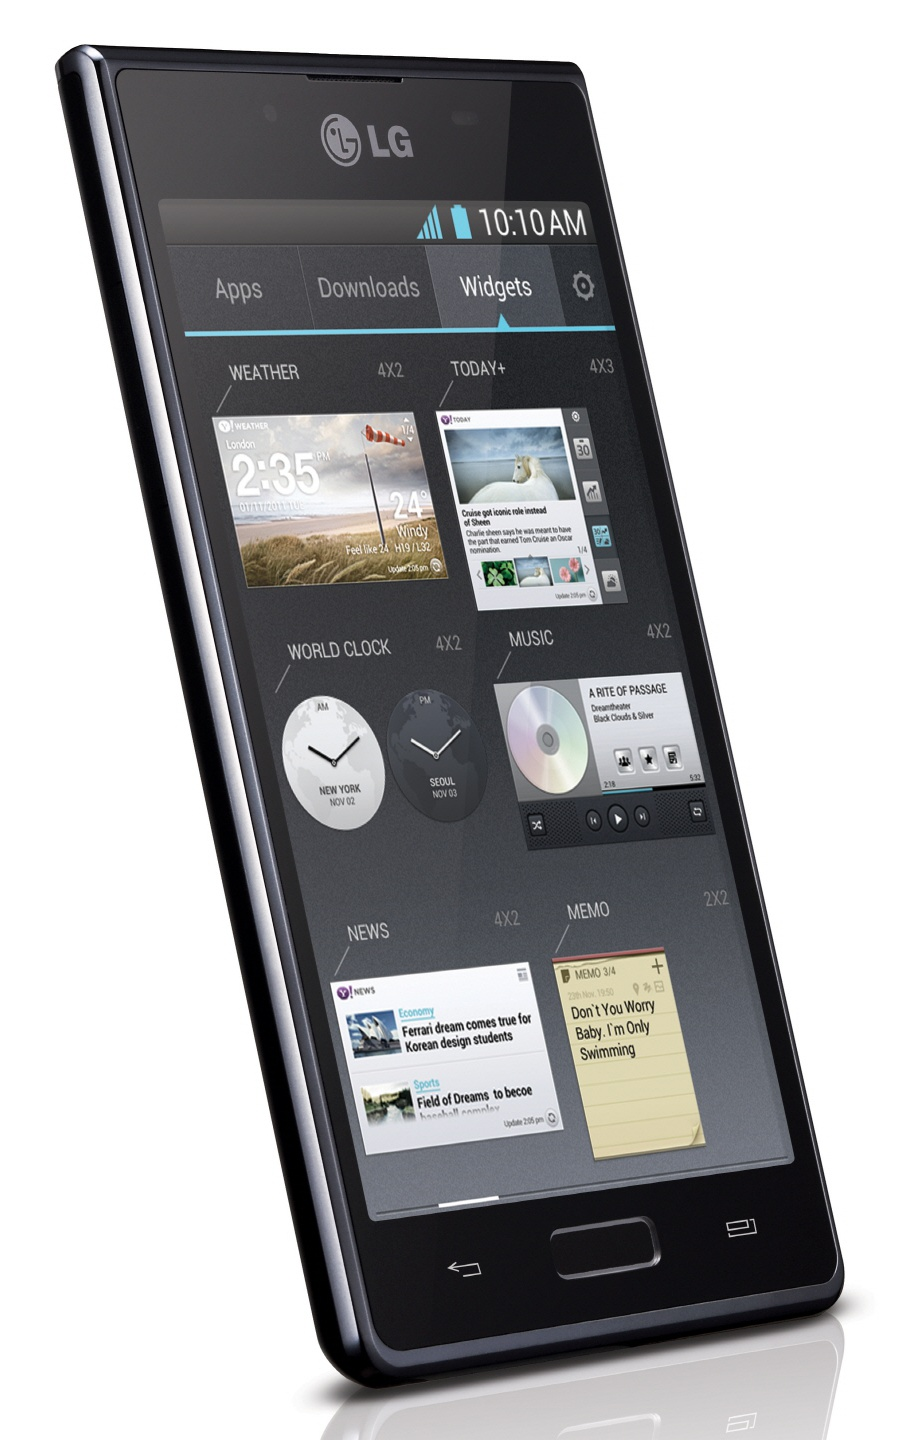 LG Optimus L7 P700 Imagen frontal y lateral